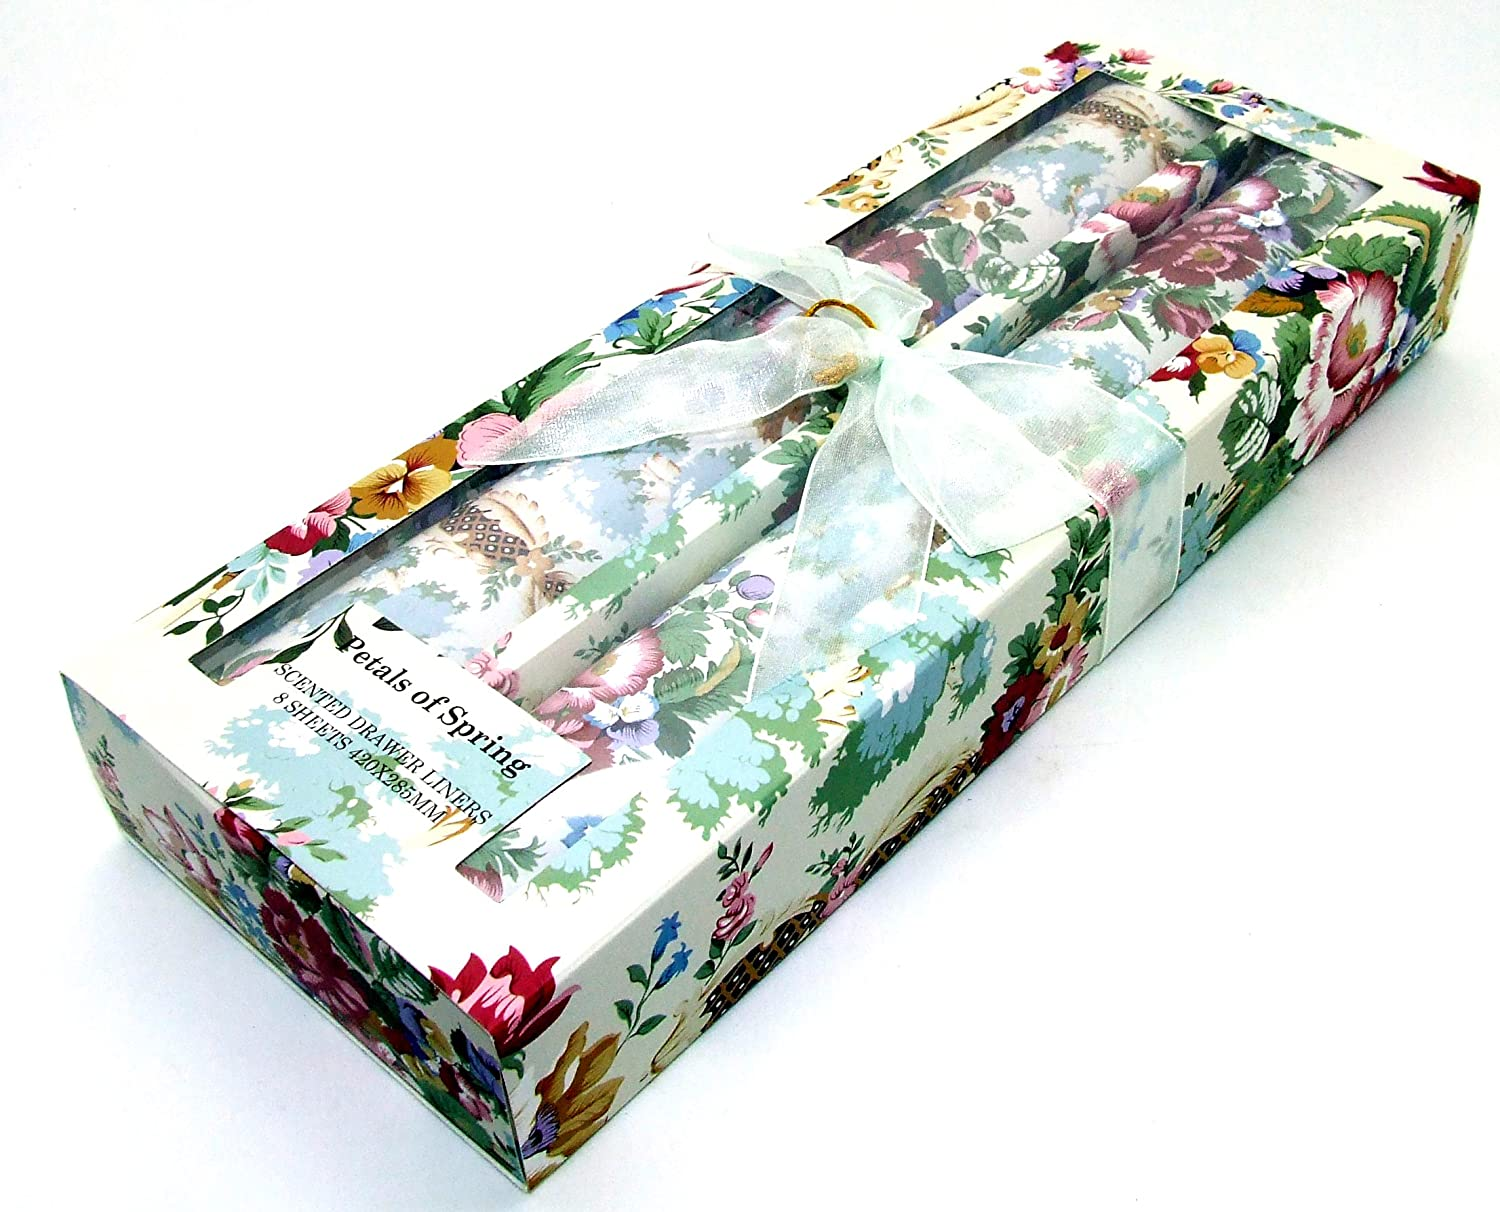 Scented Perfumed Fragranced Drawer Liners - Petals of Spring Pack of 8 Sheets - Floral Pattern 42 x 28.5cm Unbranded